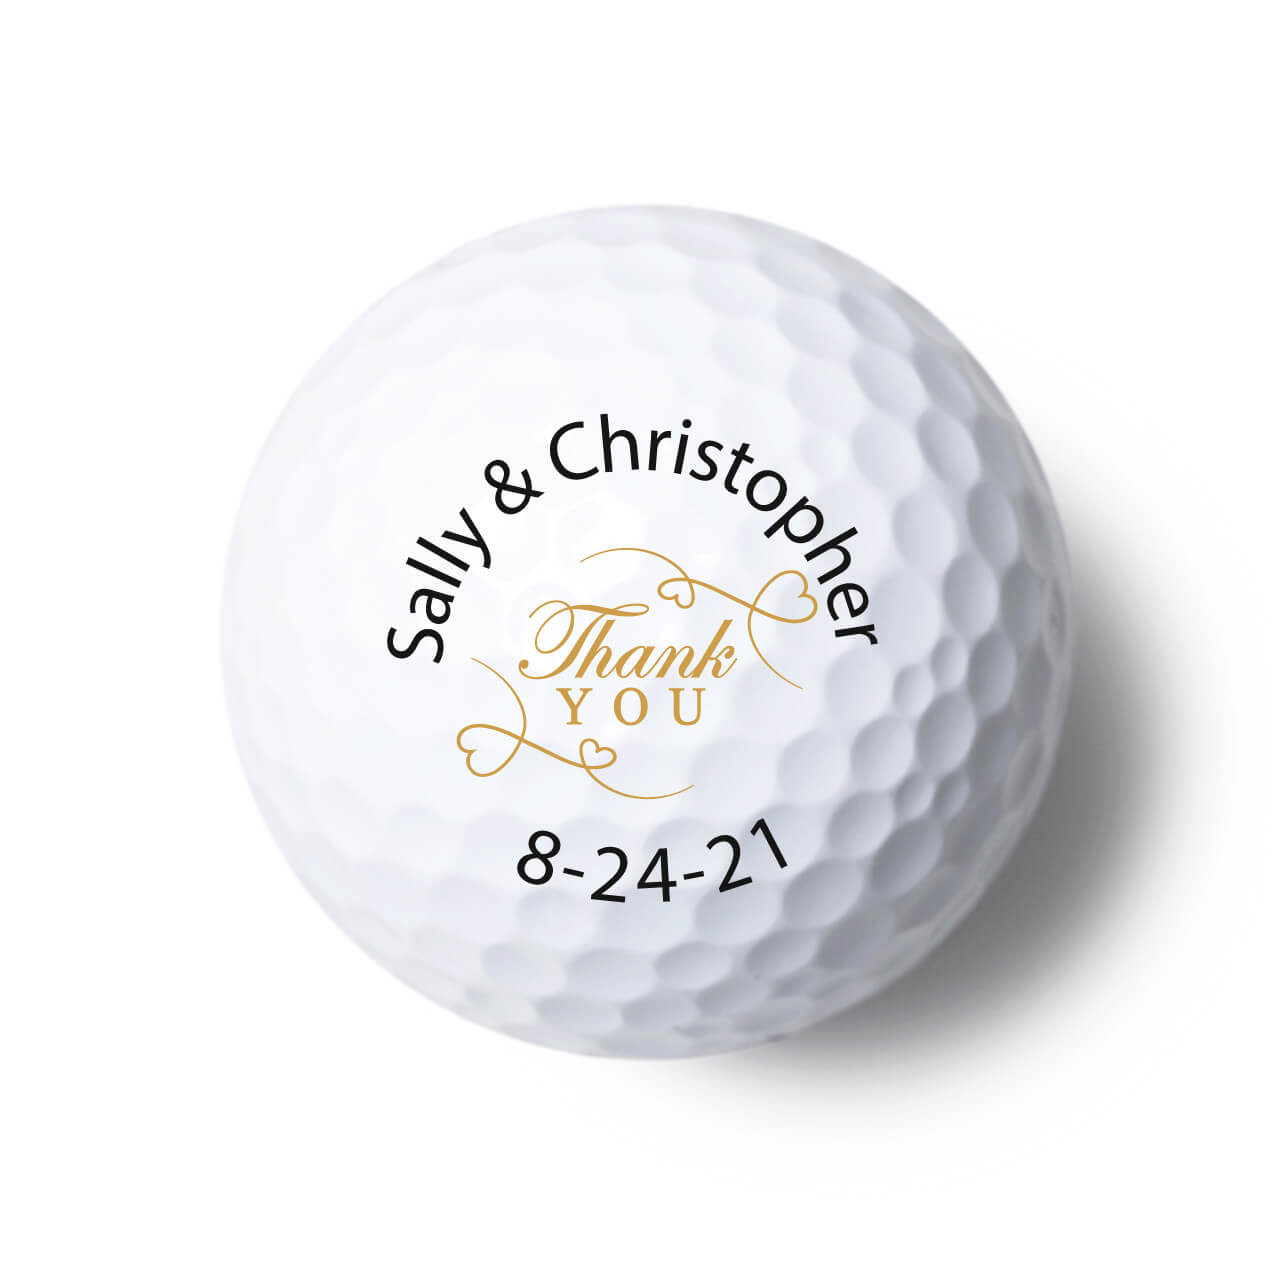 Thank You Personalized Golf Balls Favors Flowers